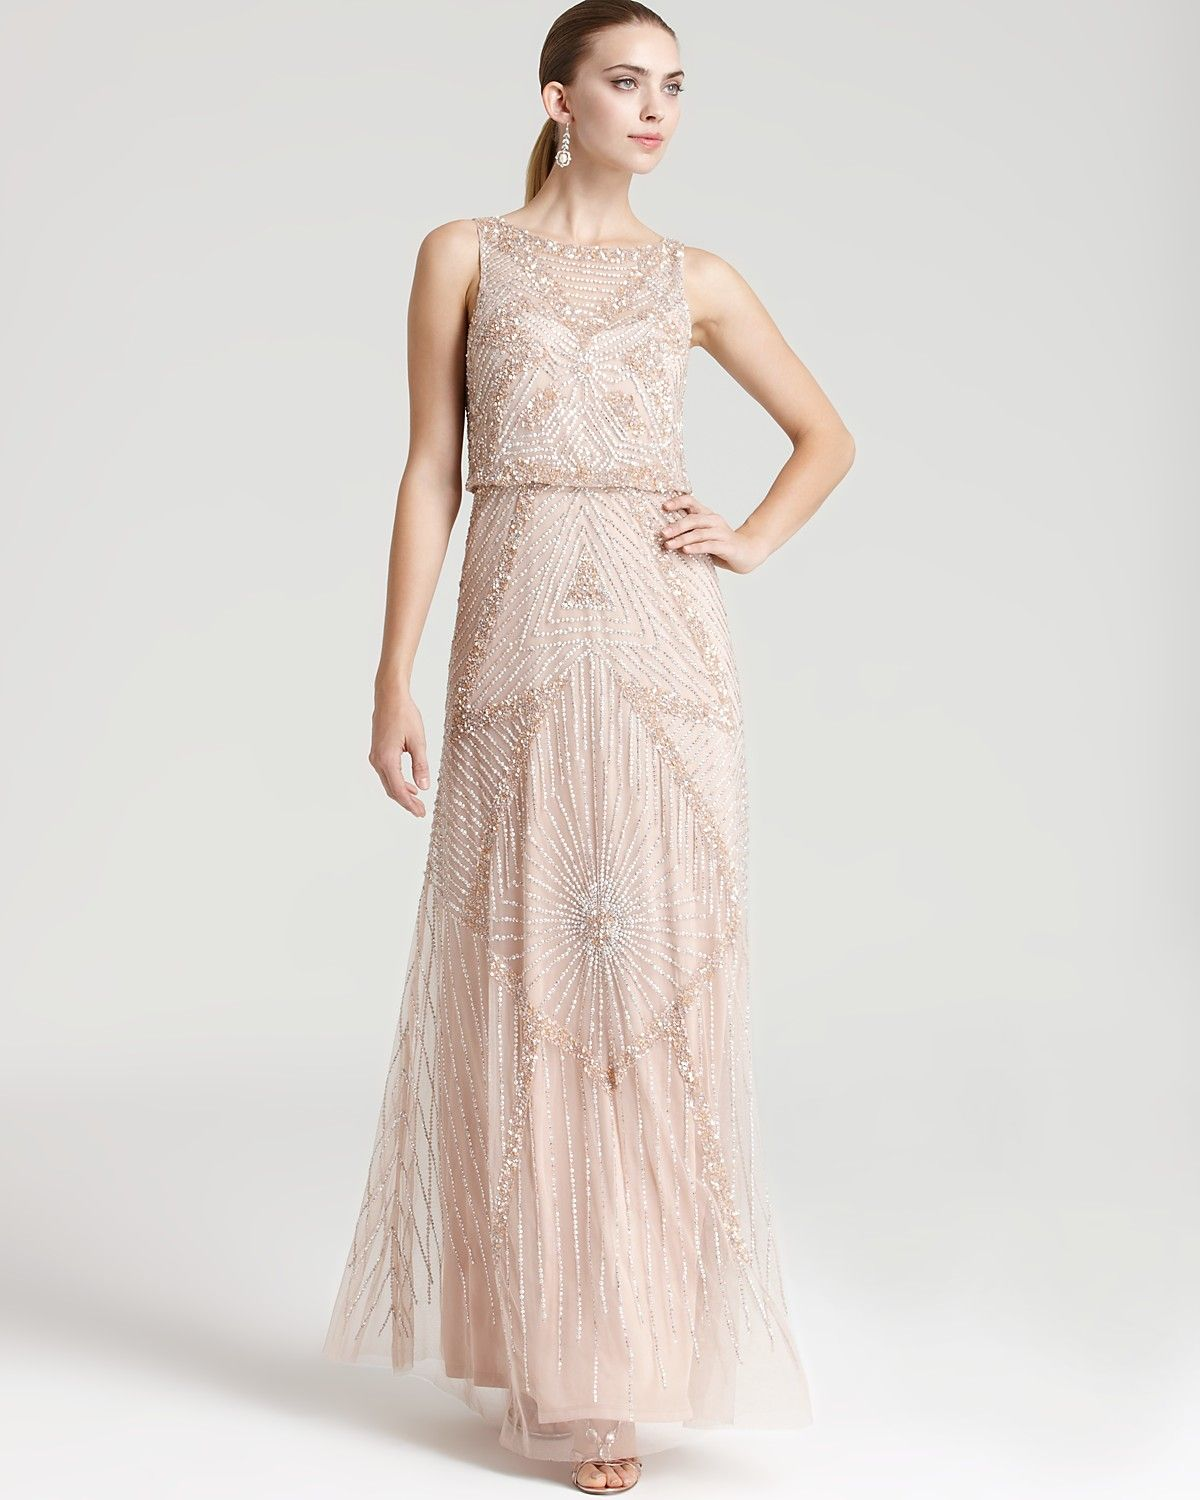 Aidan mattox beaded gown sleeveless cinched waist aidan mattox beaded gown sleeveless cinched waist bloomingdales ombrellifo Choice Image